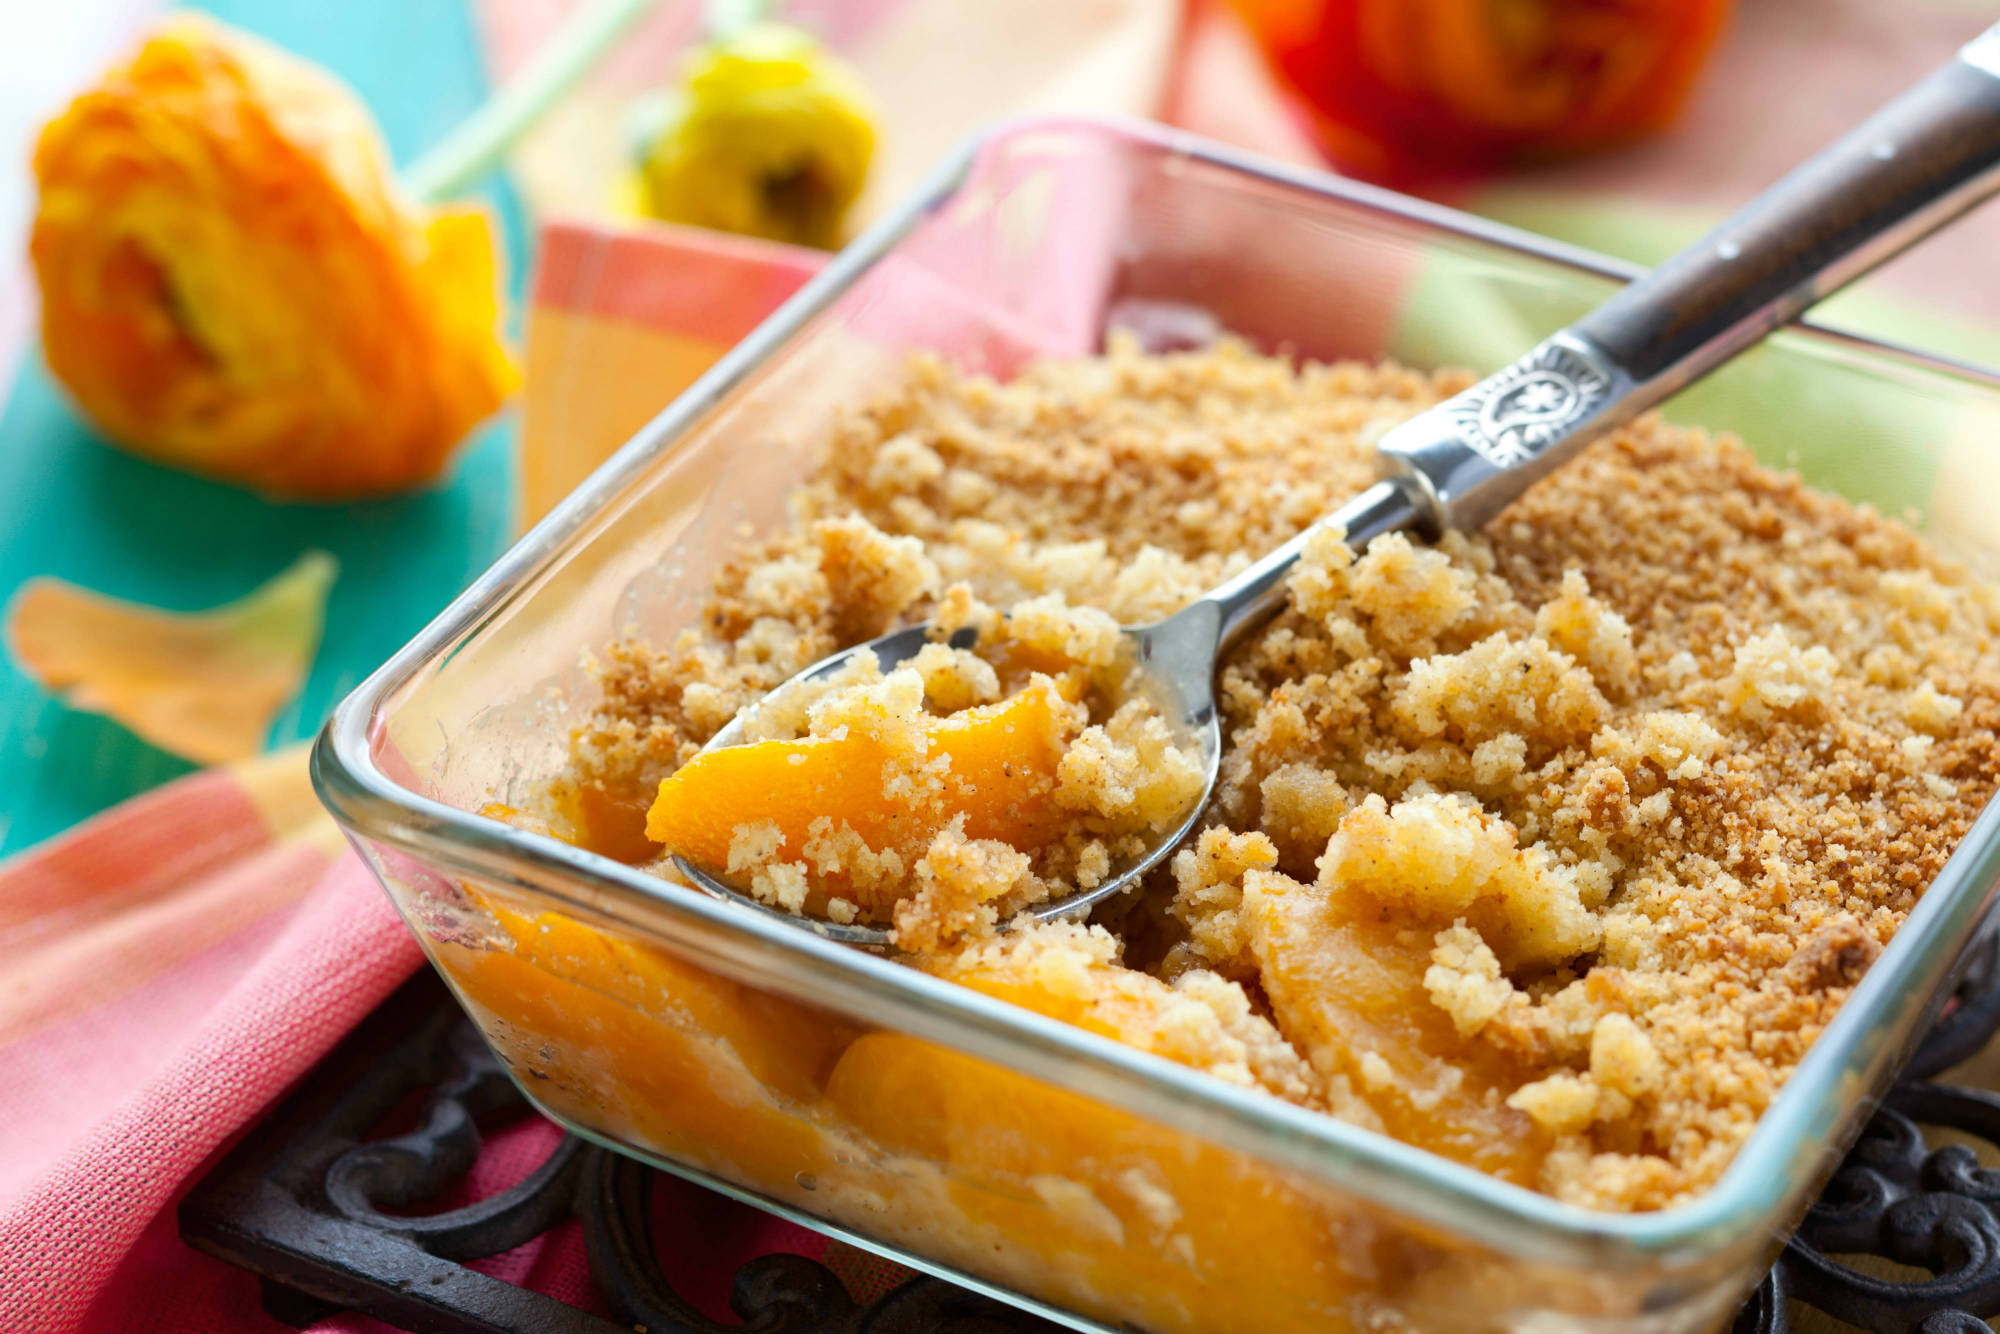 Peach and Pineapple Crumble